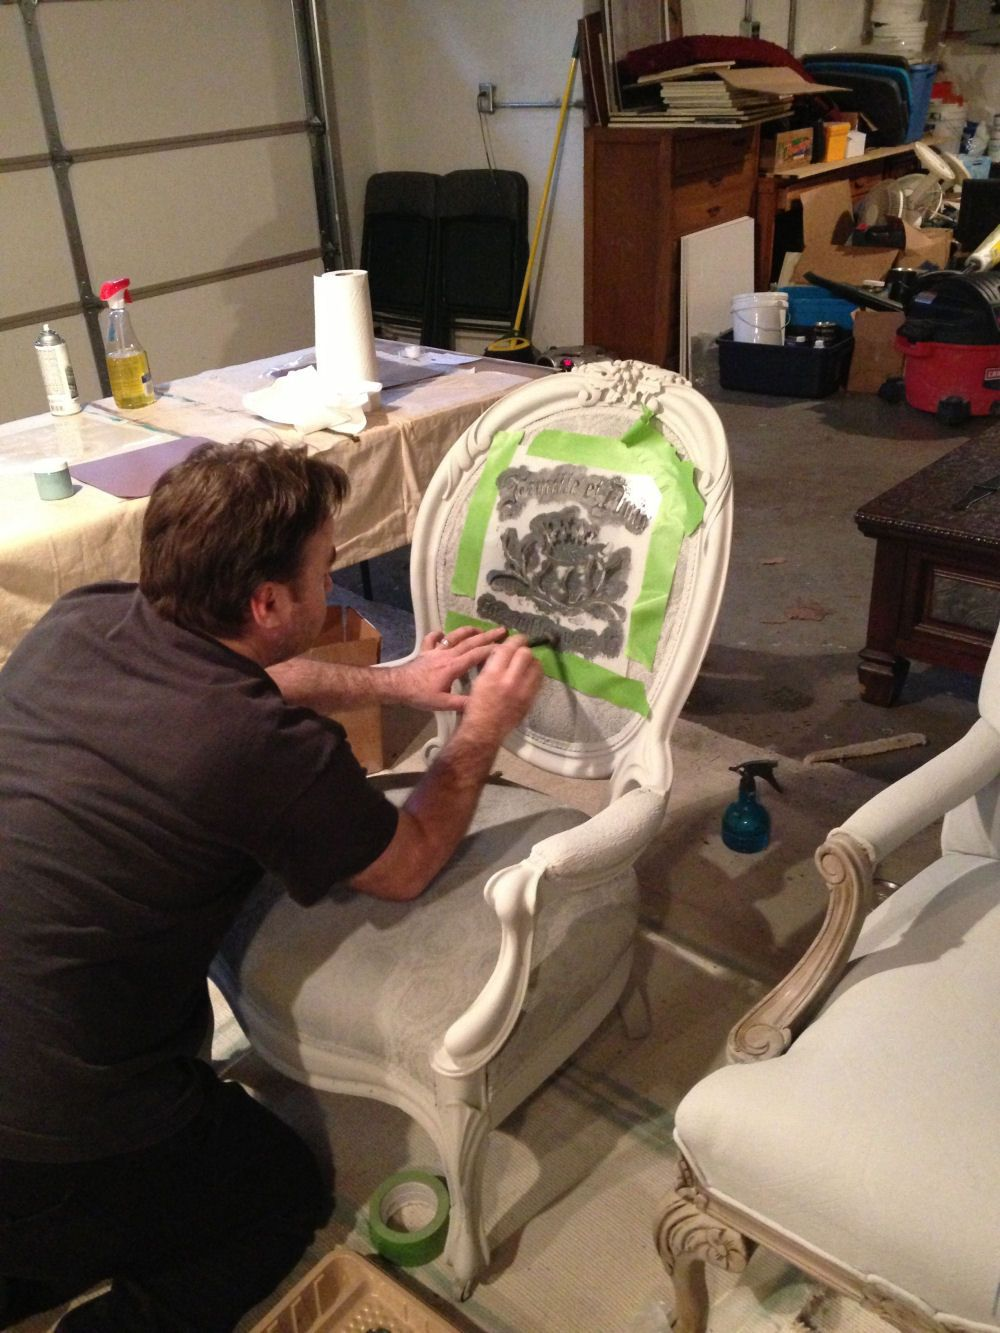 Painting Fabric With Annie Sloan Chalk Paint - Painting fabric with annie sloan chalk paint